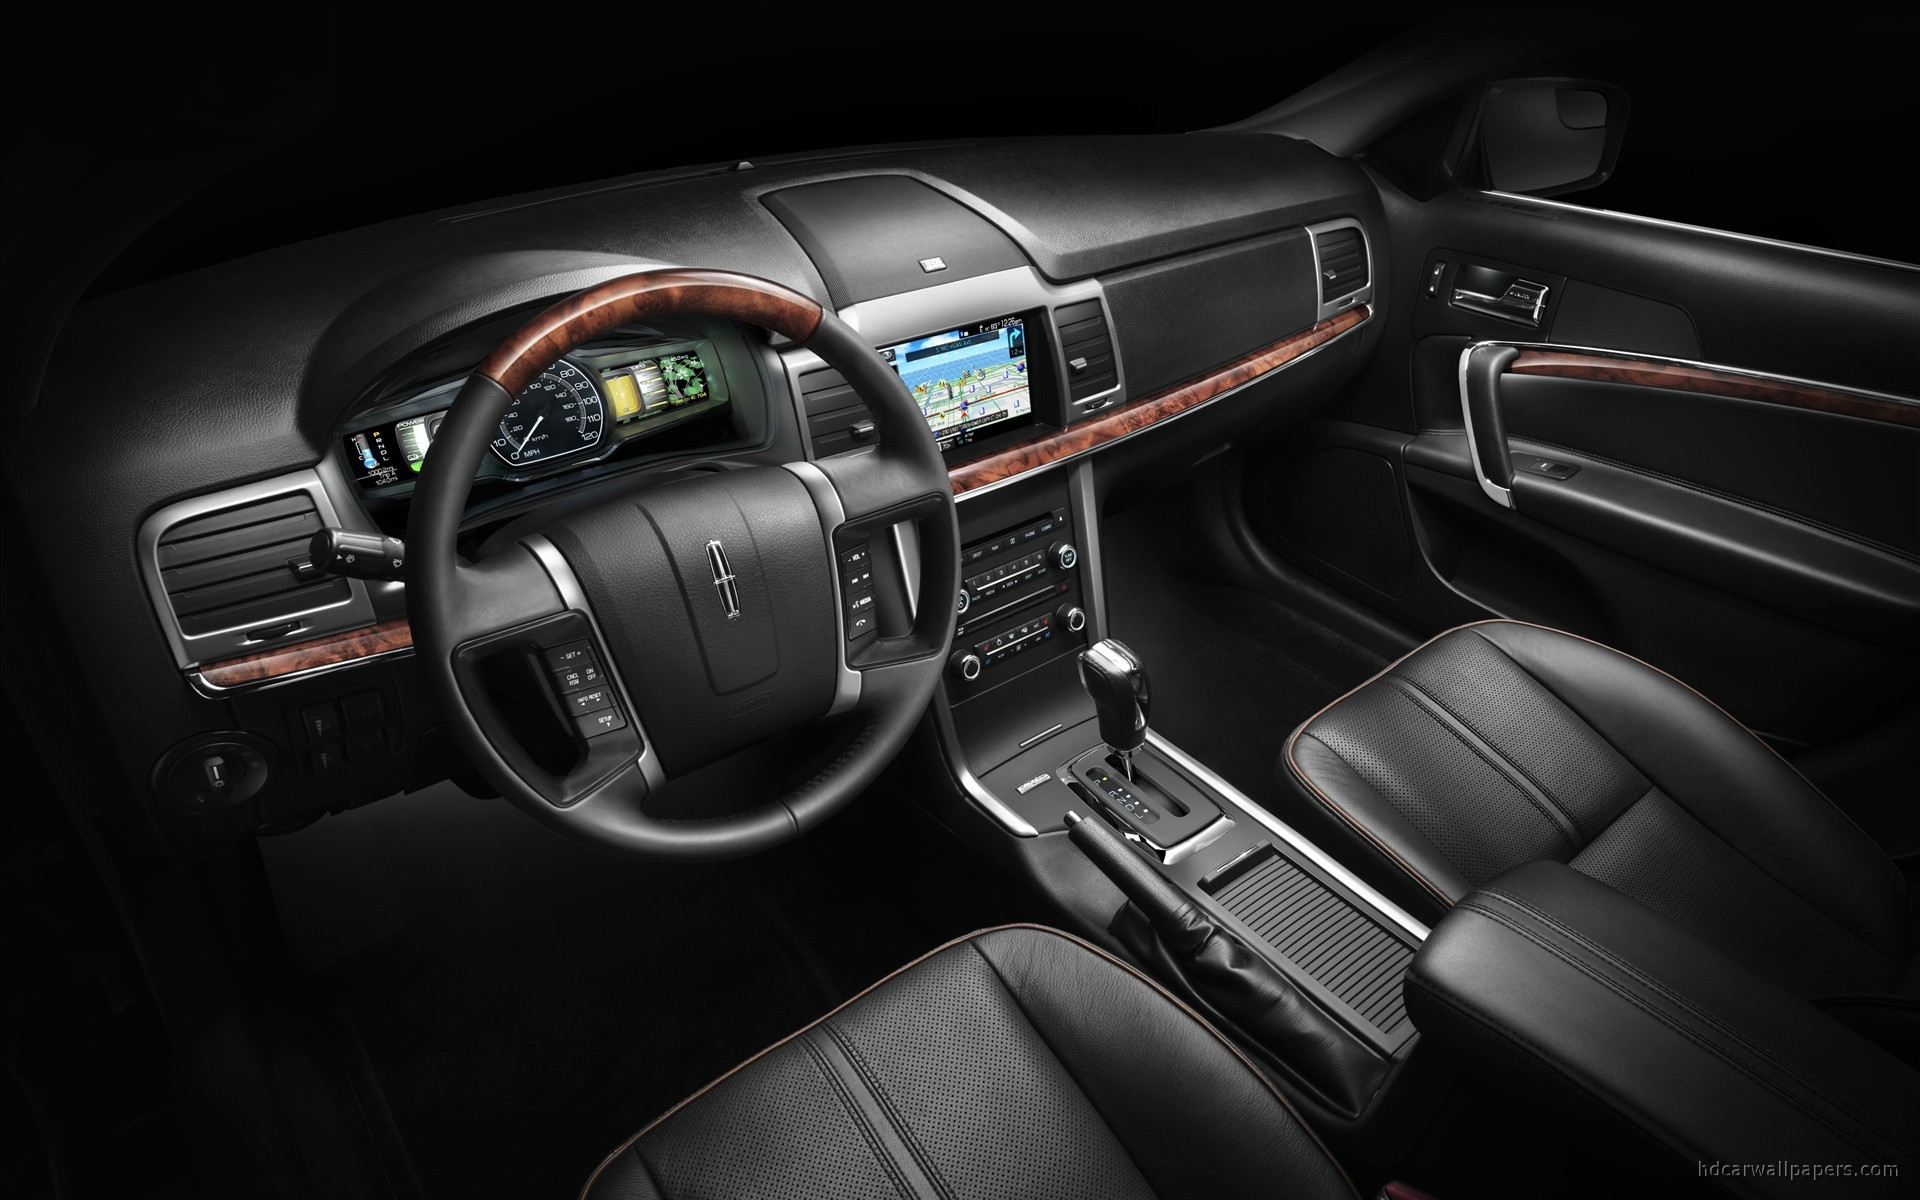 2011 Lincoln Mkz Hybrid Interior Wallpaper Hd Car